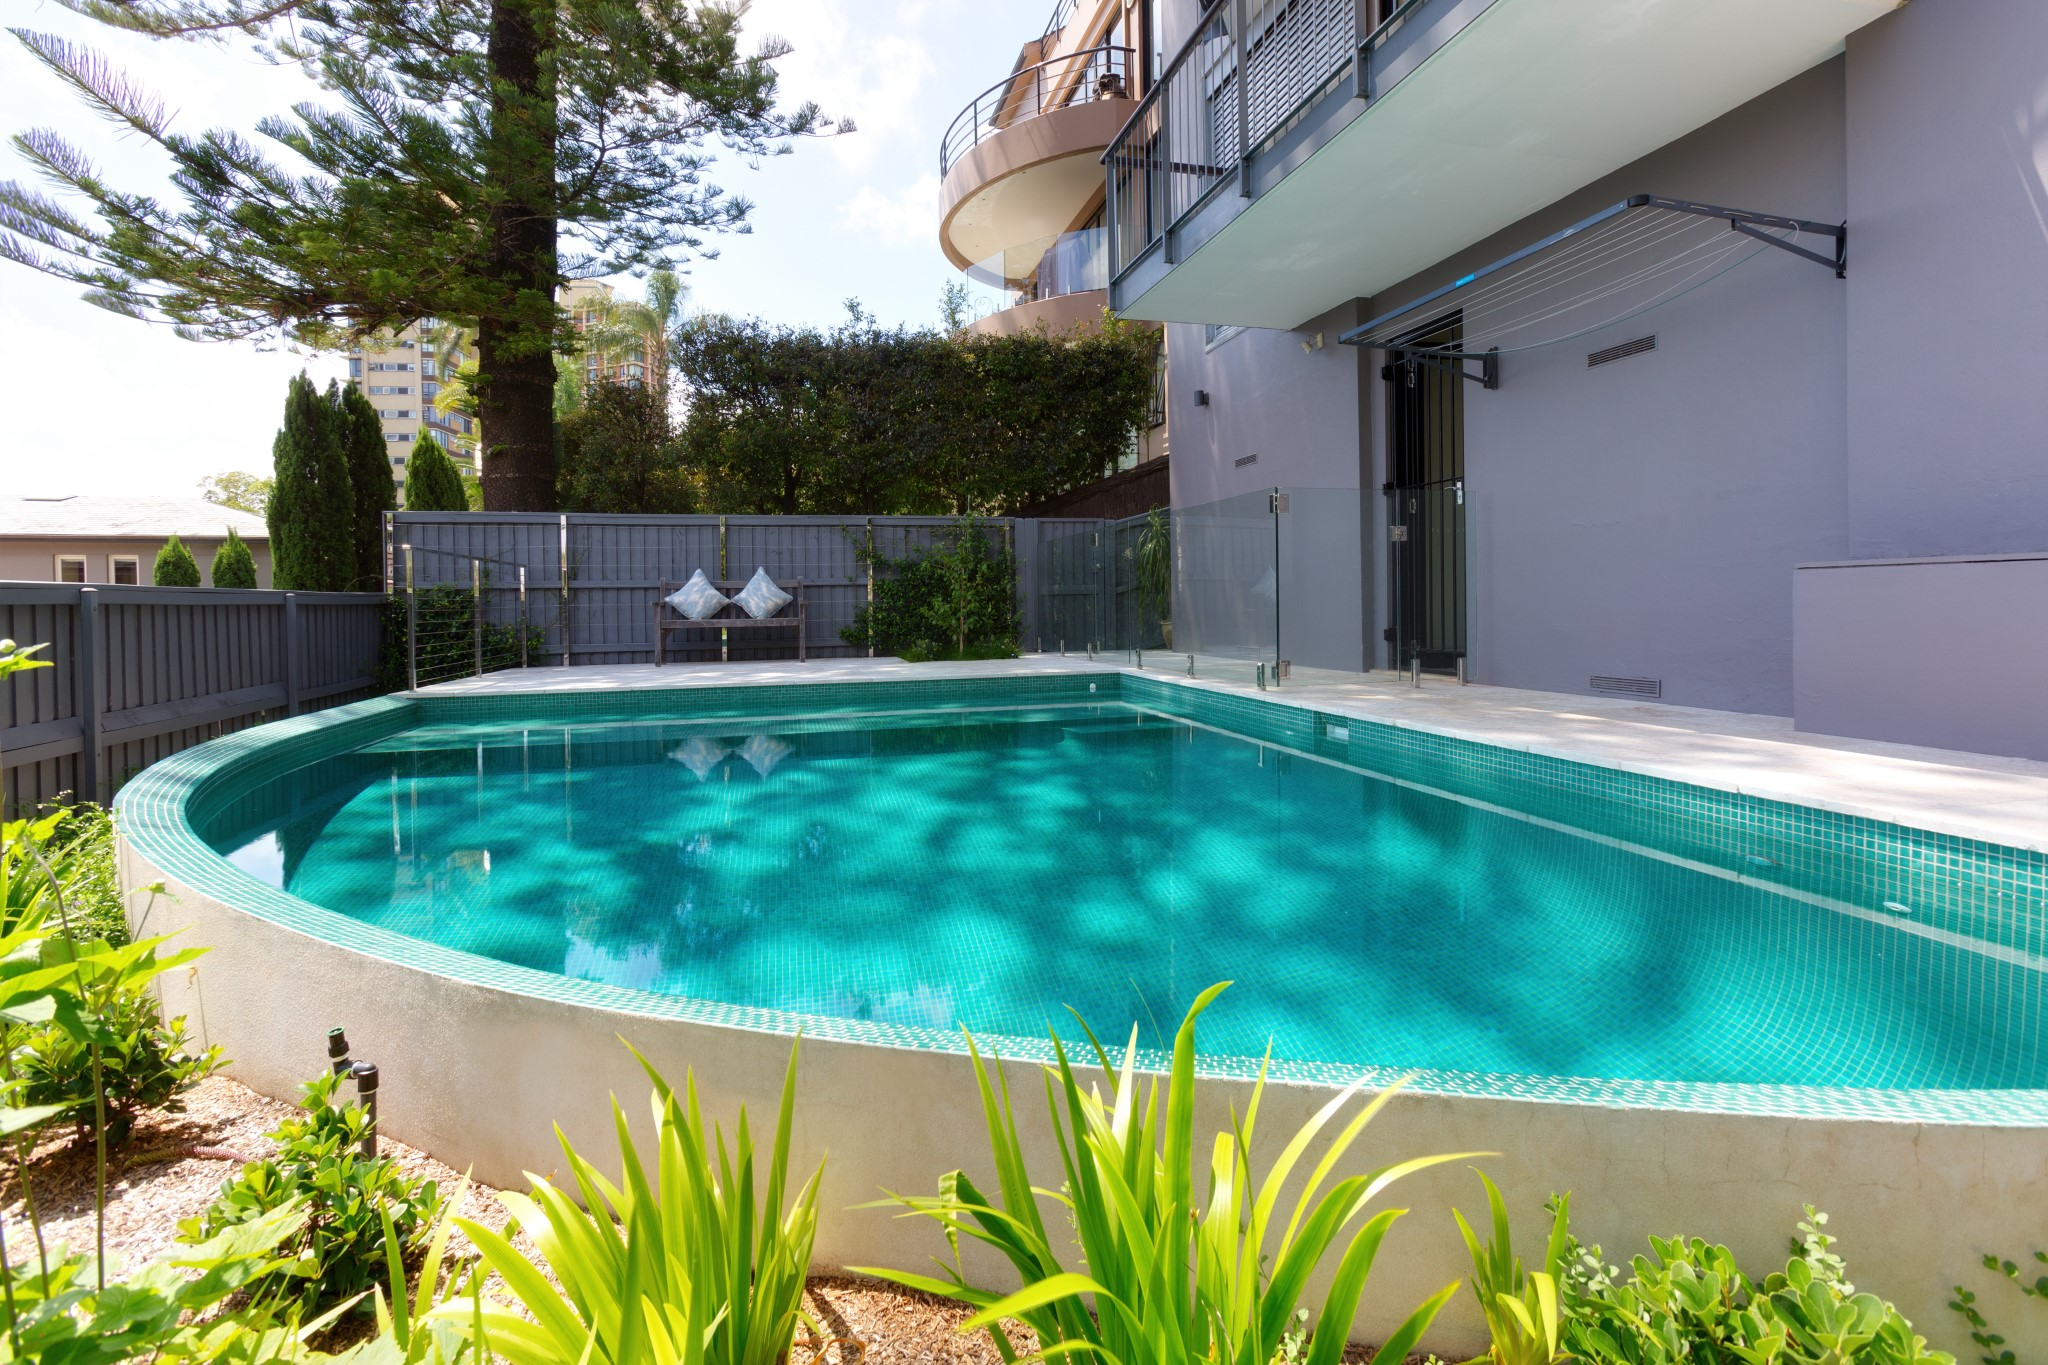 Private swimming pool in a backyard of a house in Darling Point